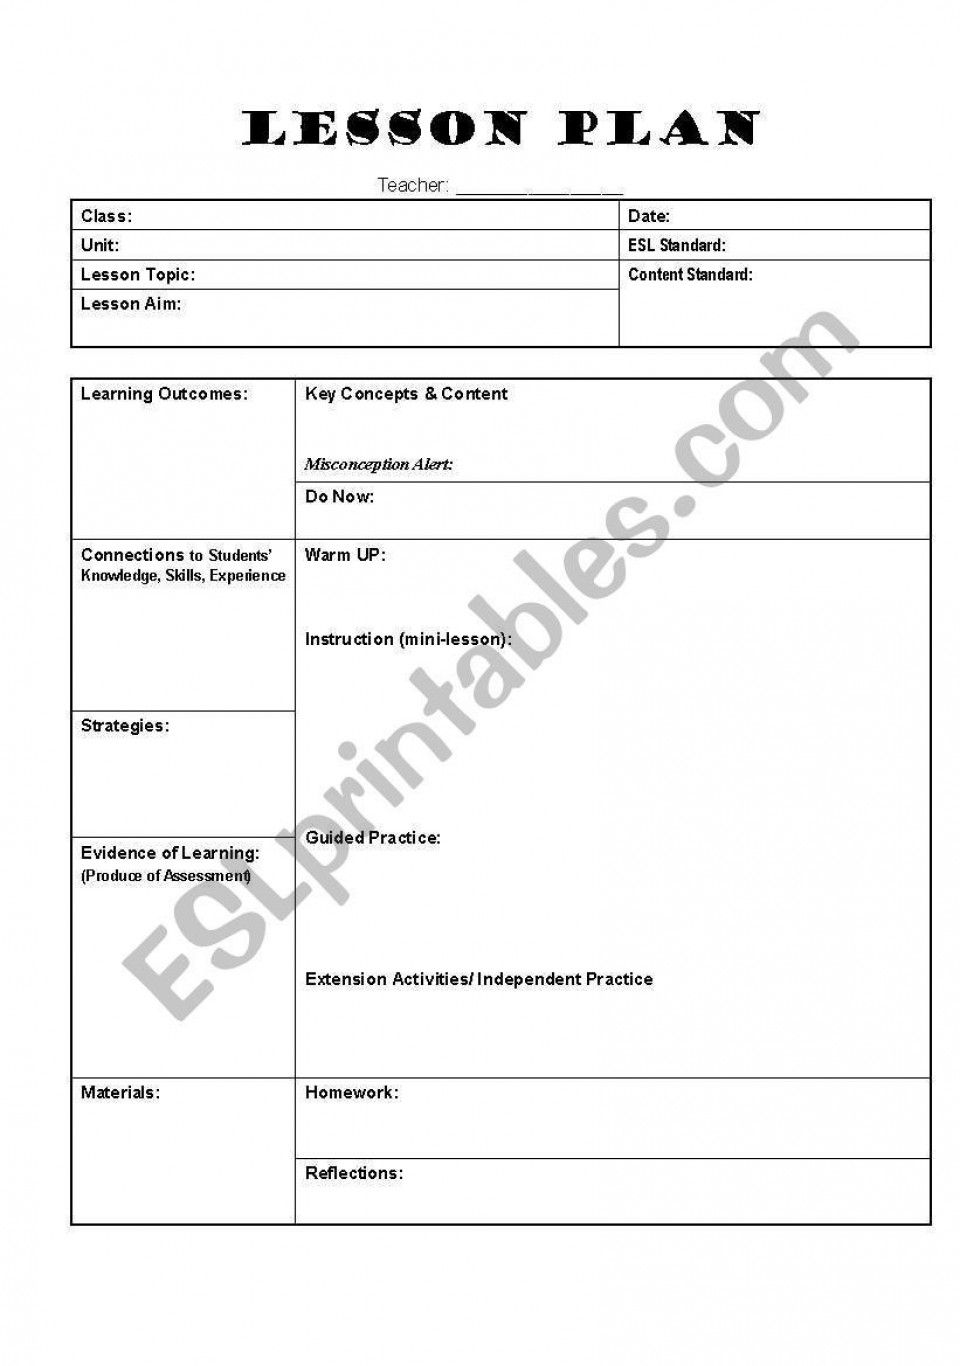 002 Exceptional Editable Lesson Plan Template Elementary Photo 960